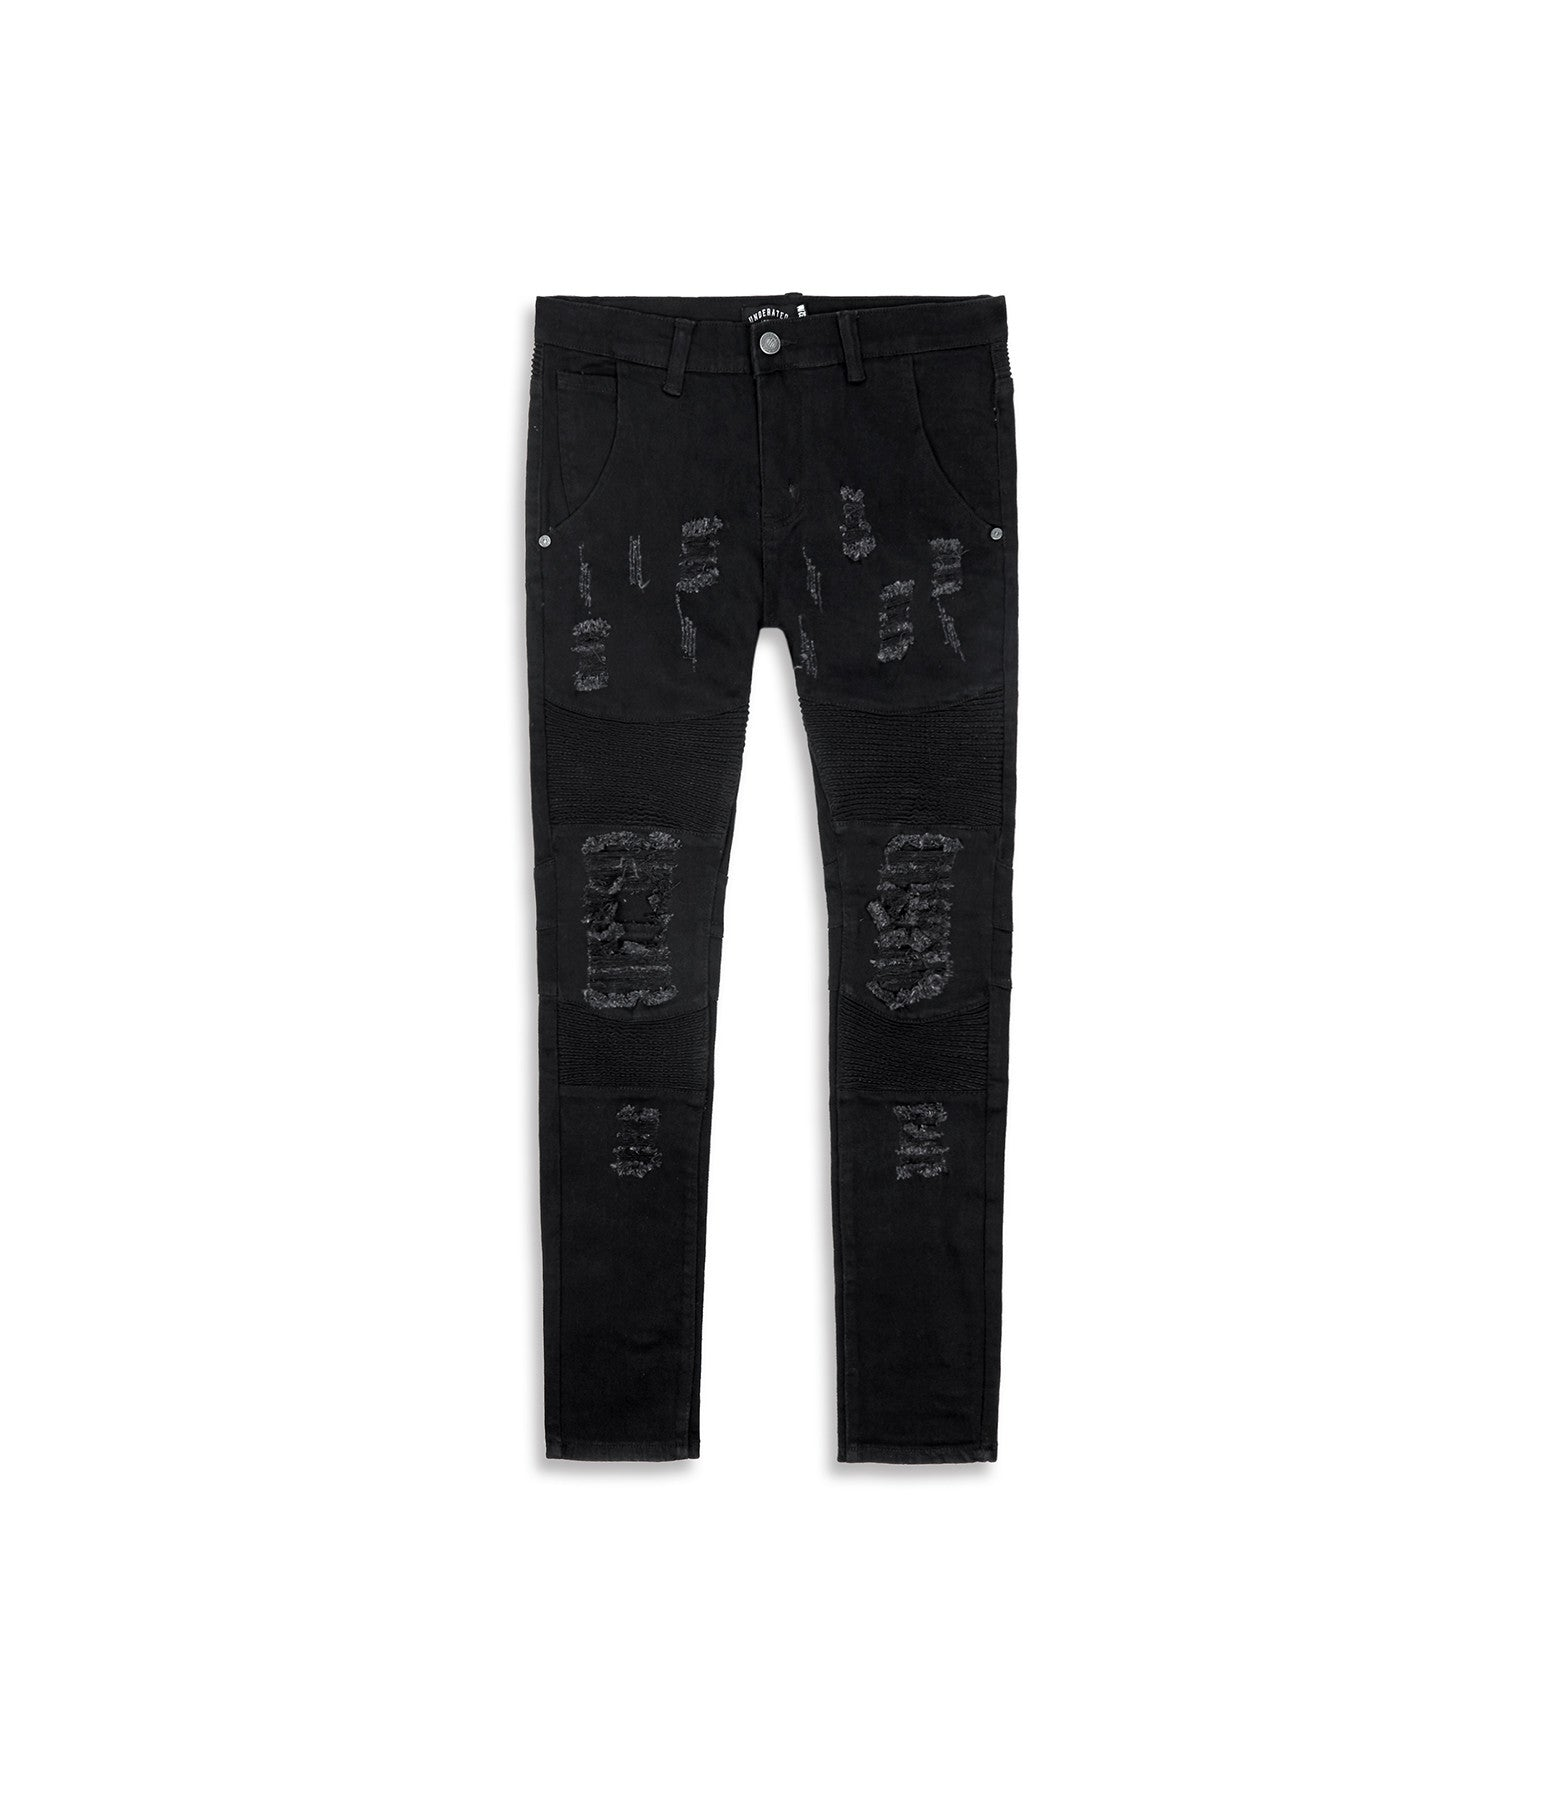 JN152 Distressed Biker Denim - Solid Black - underated london - underatedco - 9